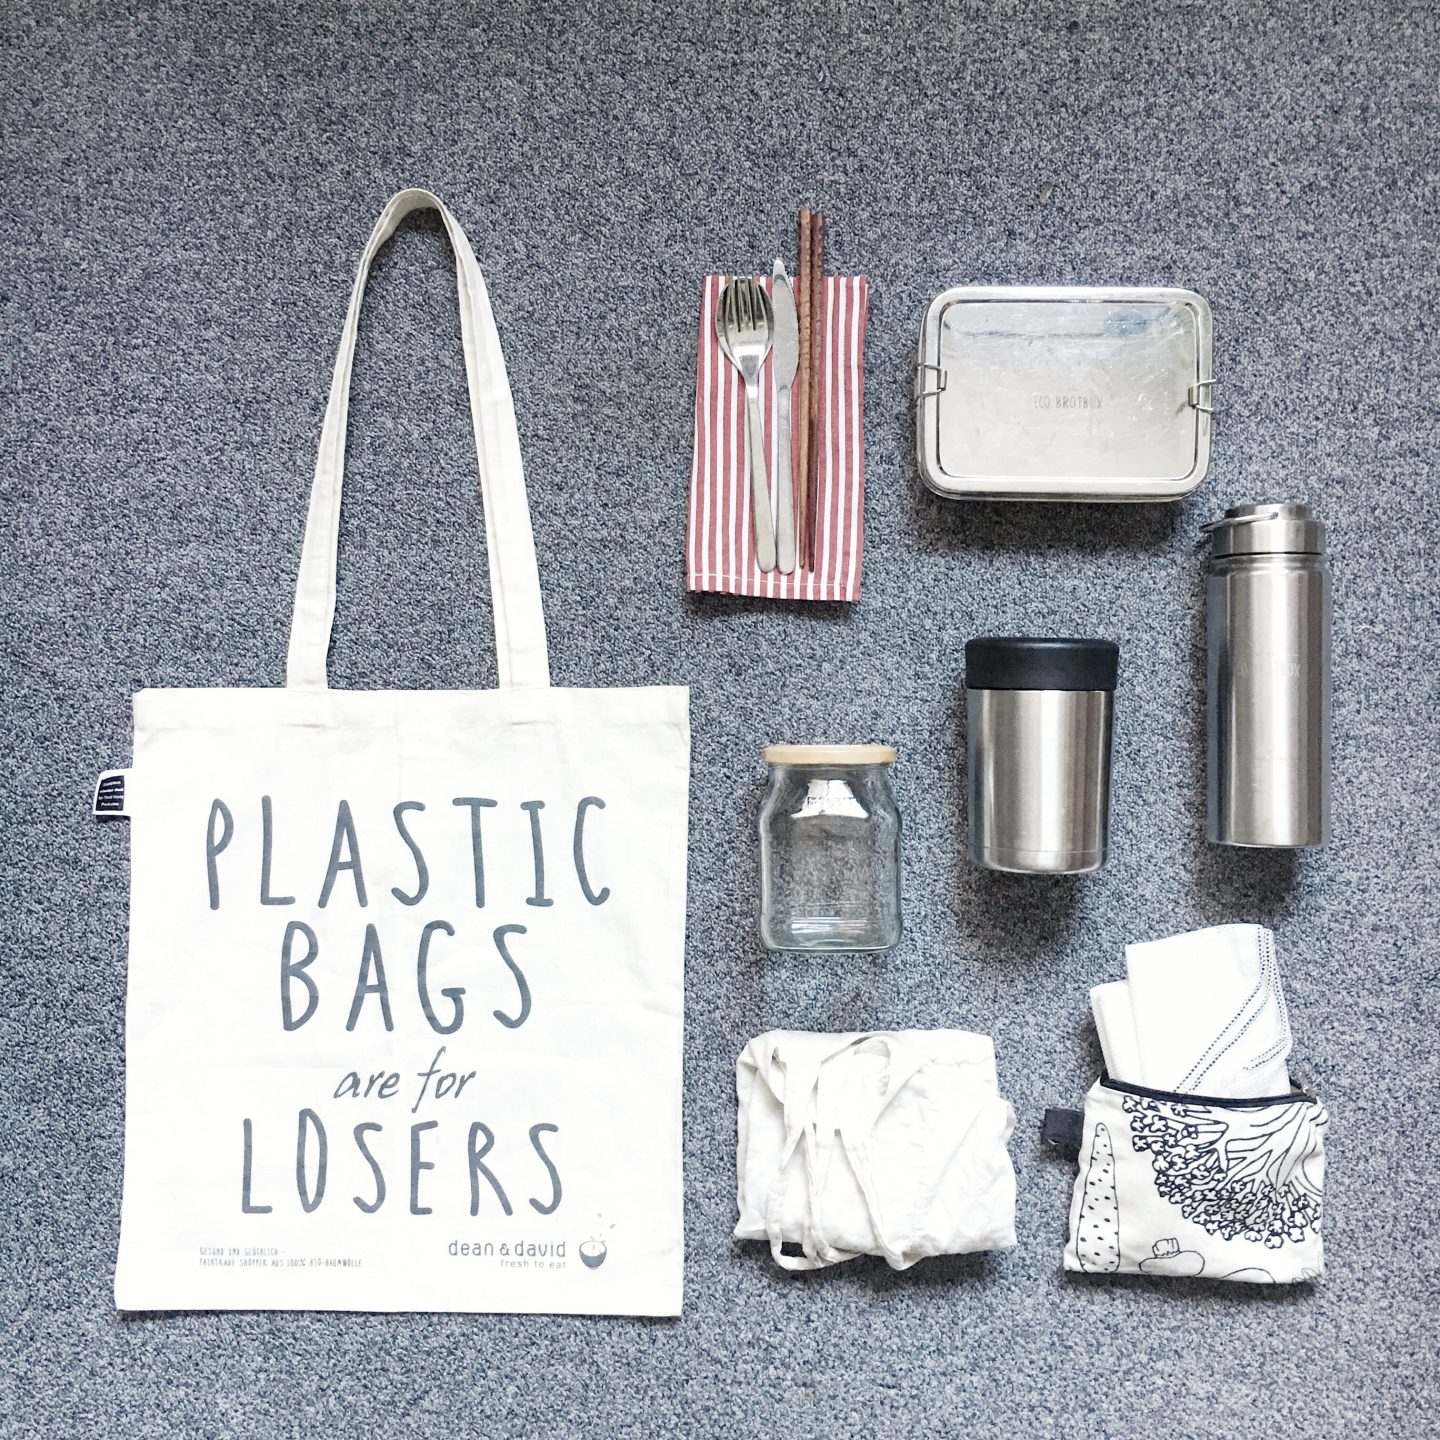 Zero Waste doesn't mean perfection. But can you pledge to go plastic free this month?